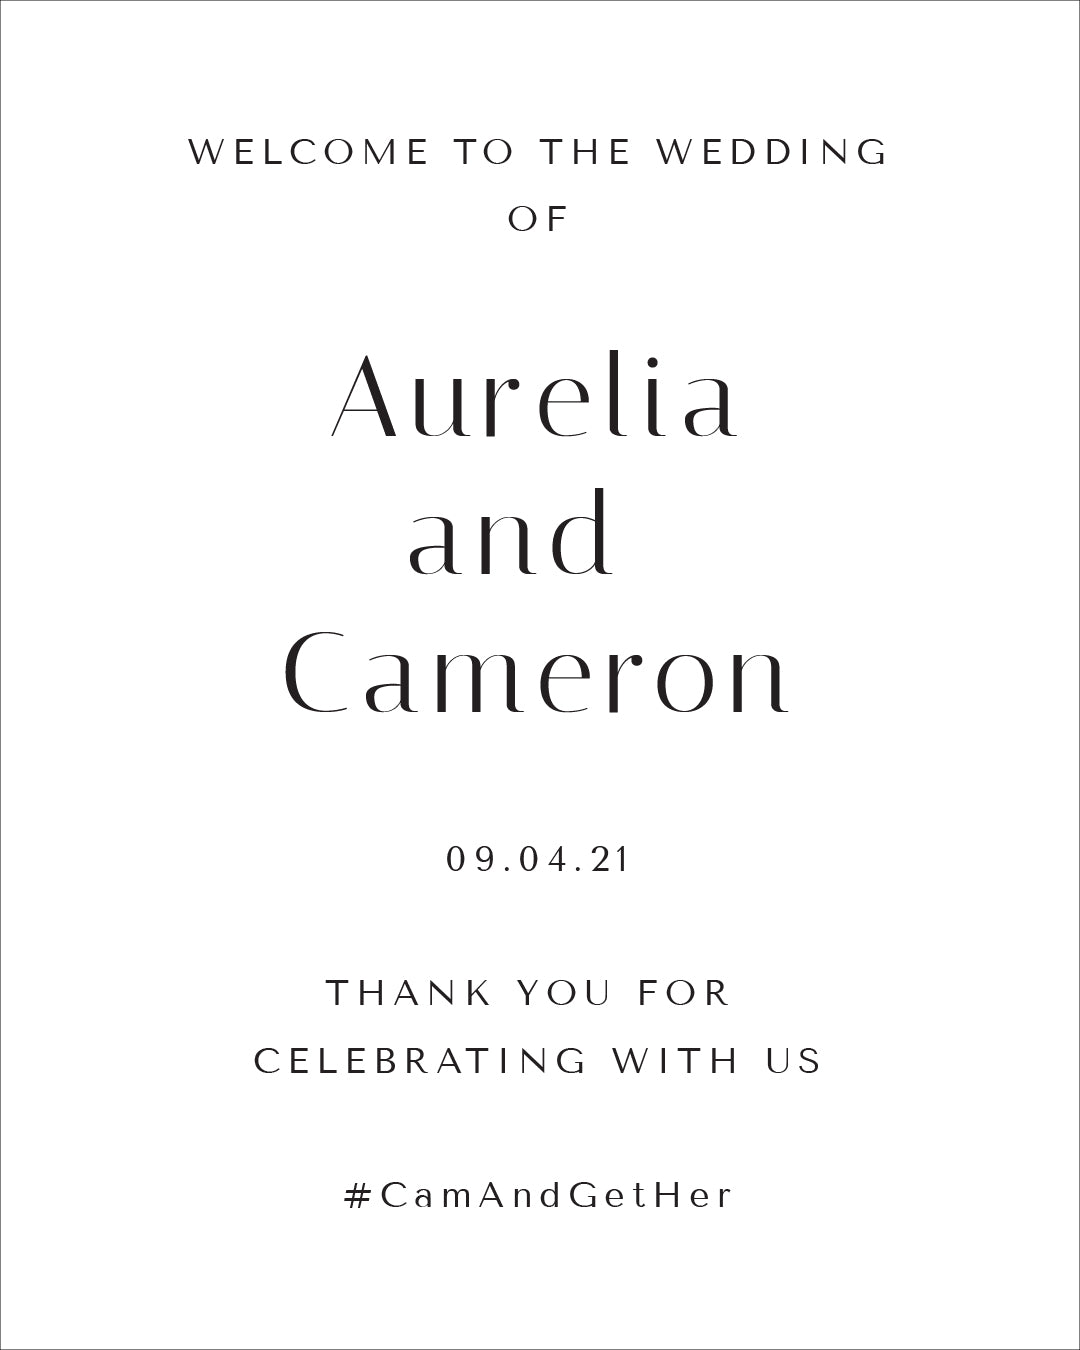 Simple Wedding Welcome Sign | The Aurelia